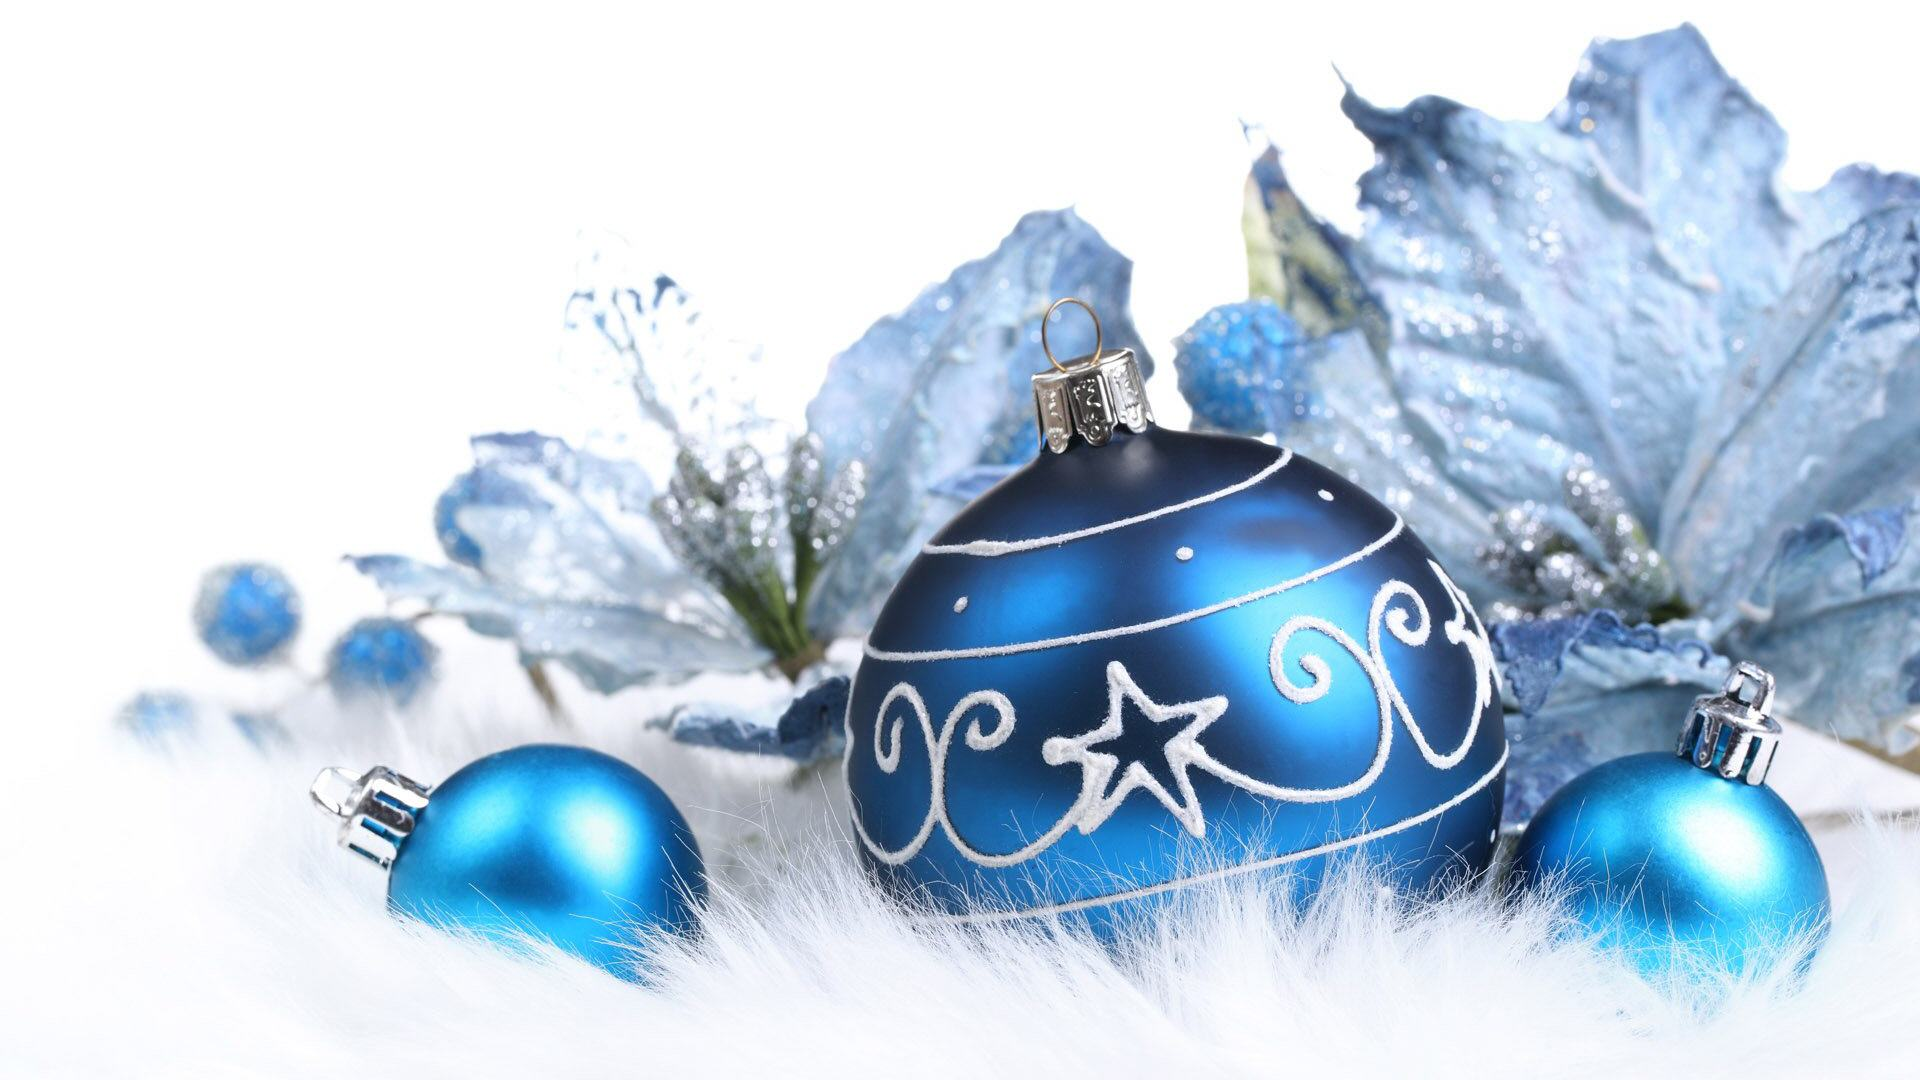 blue christmas hd wallpaper - Blue Christmas Service